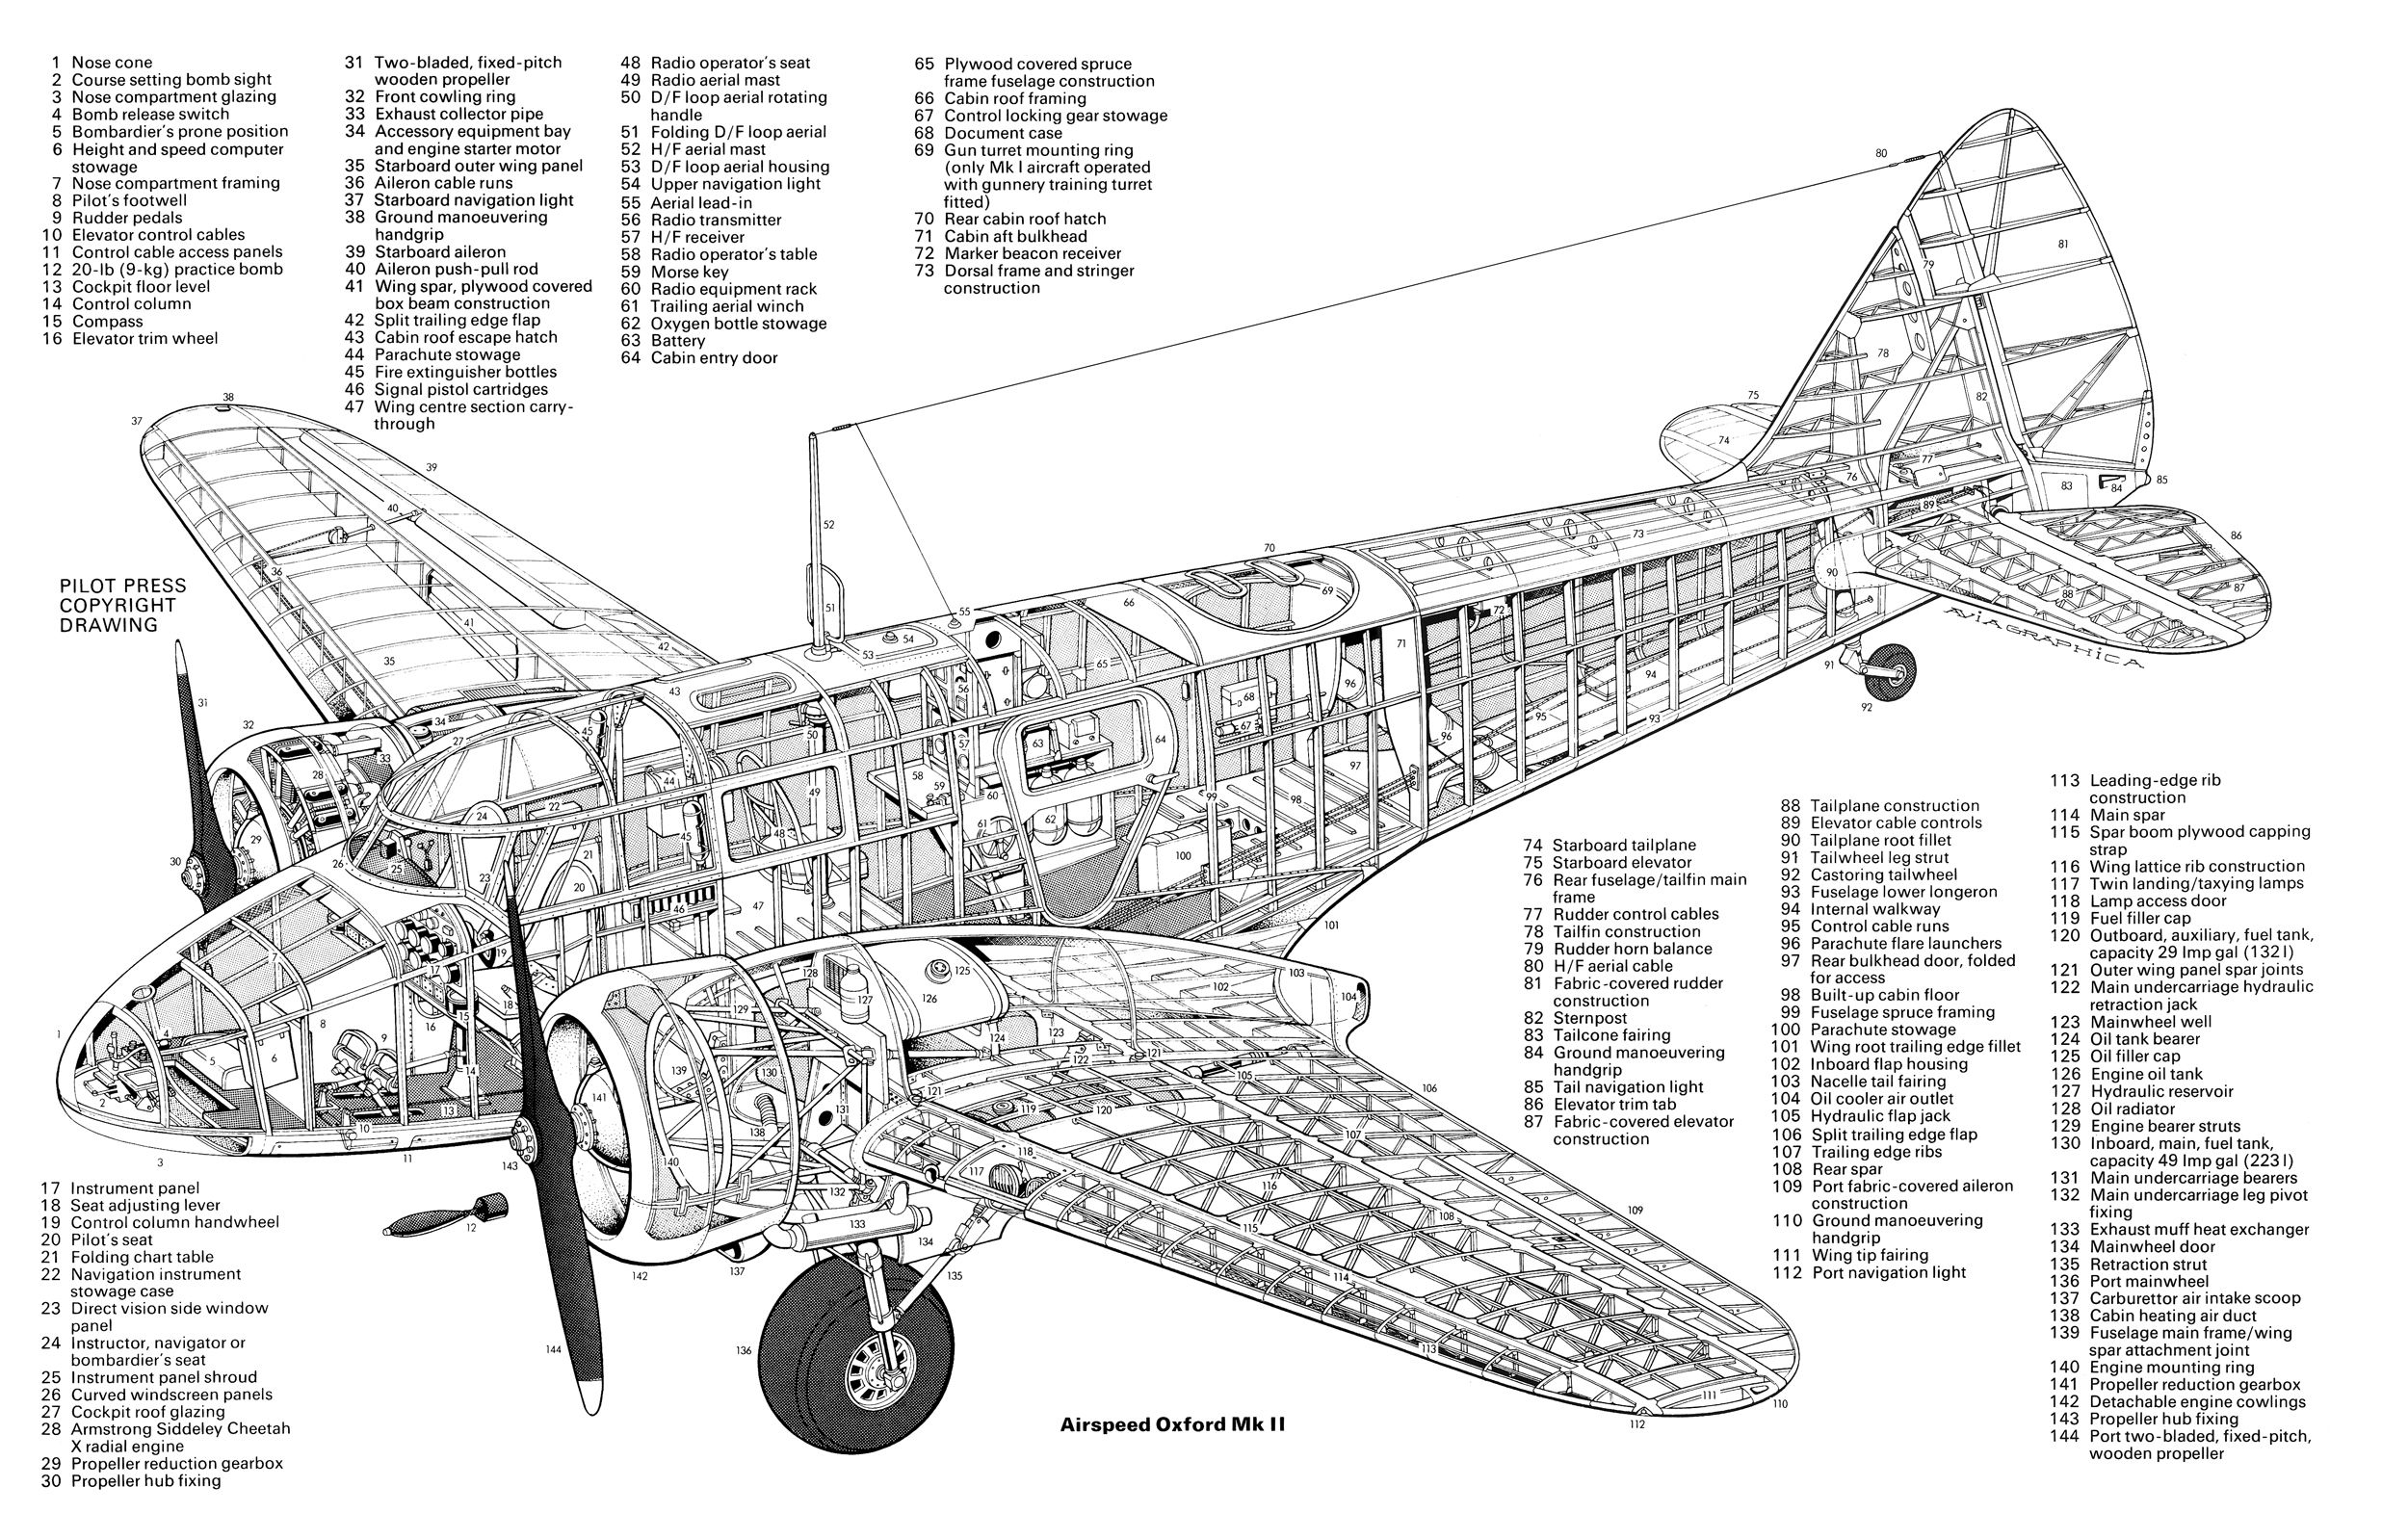 F15 Eagle Cutaways Ed Forums Lines In T